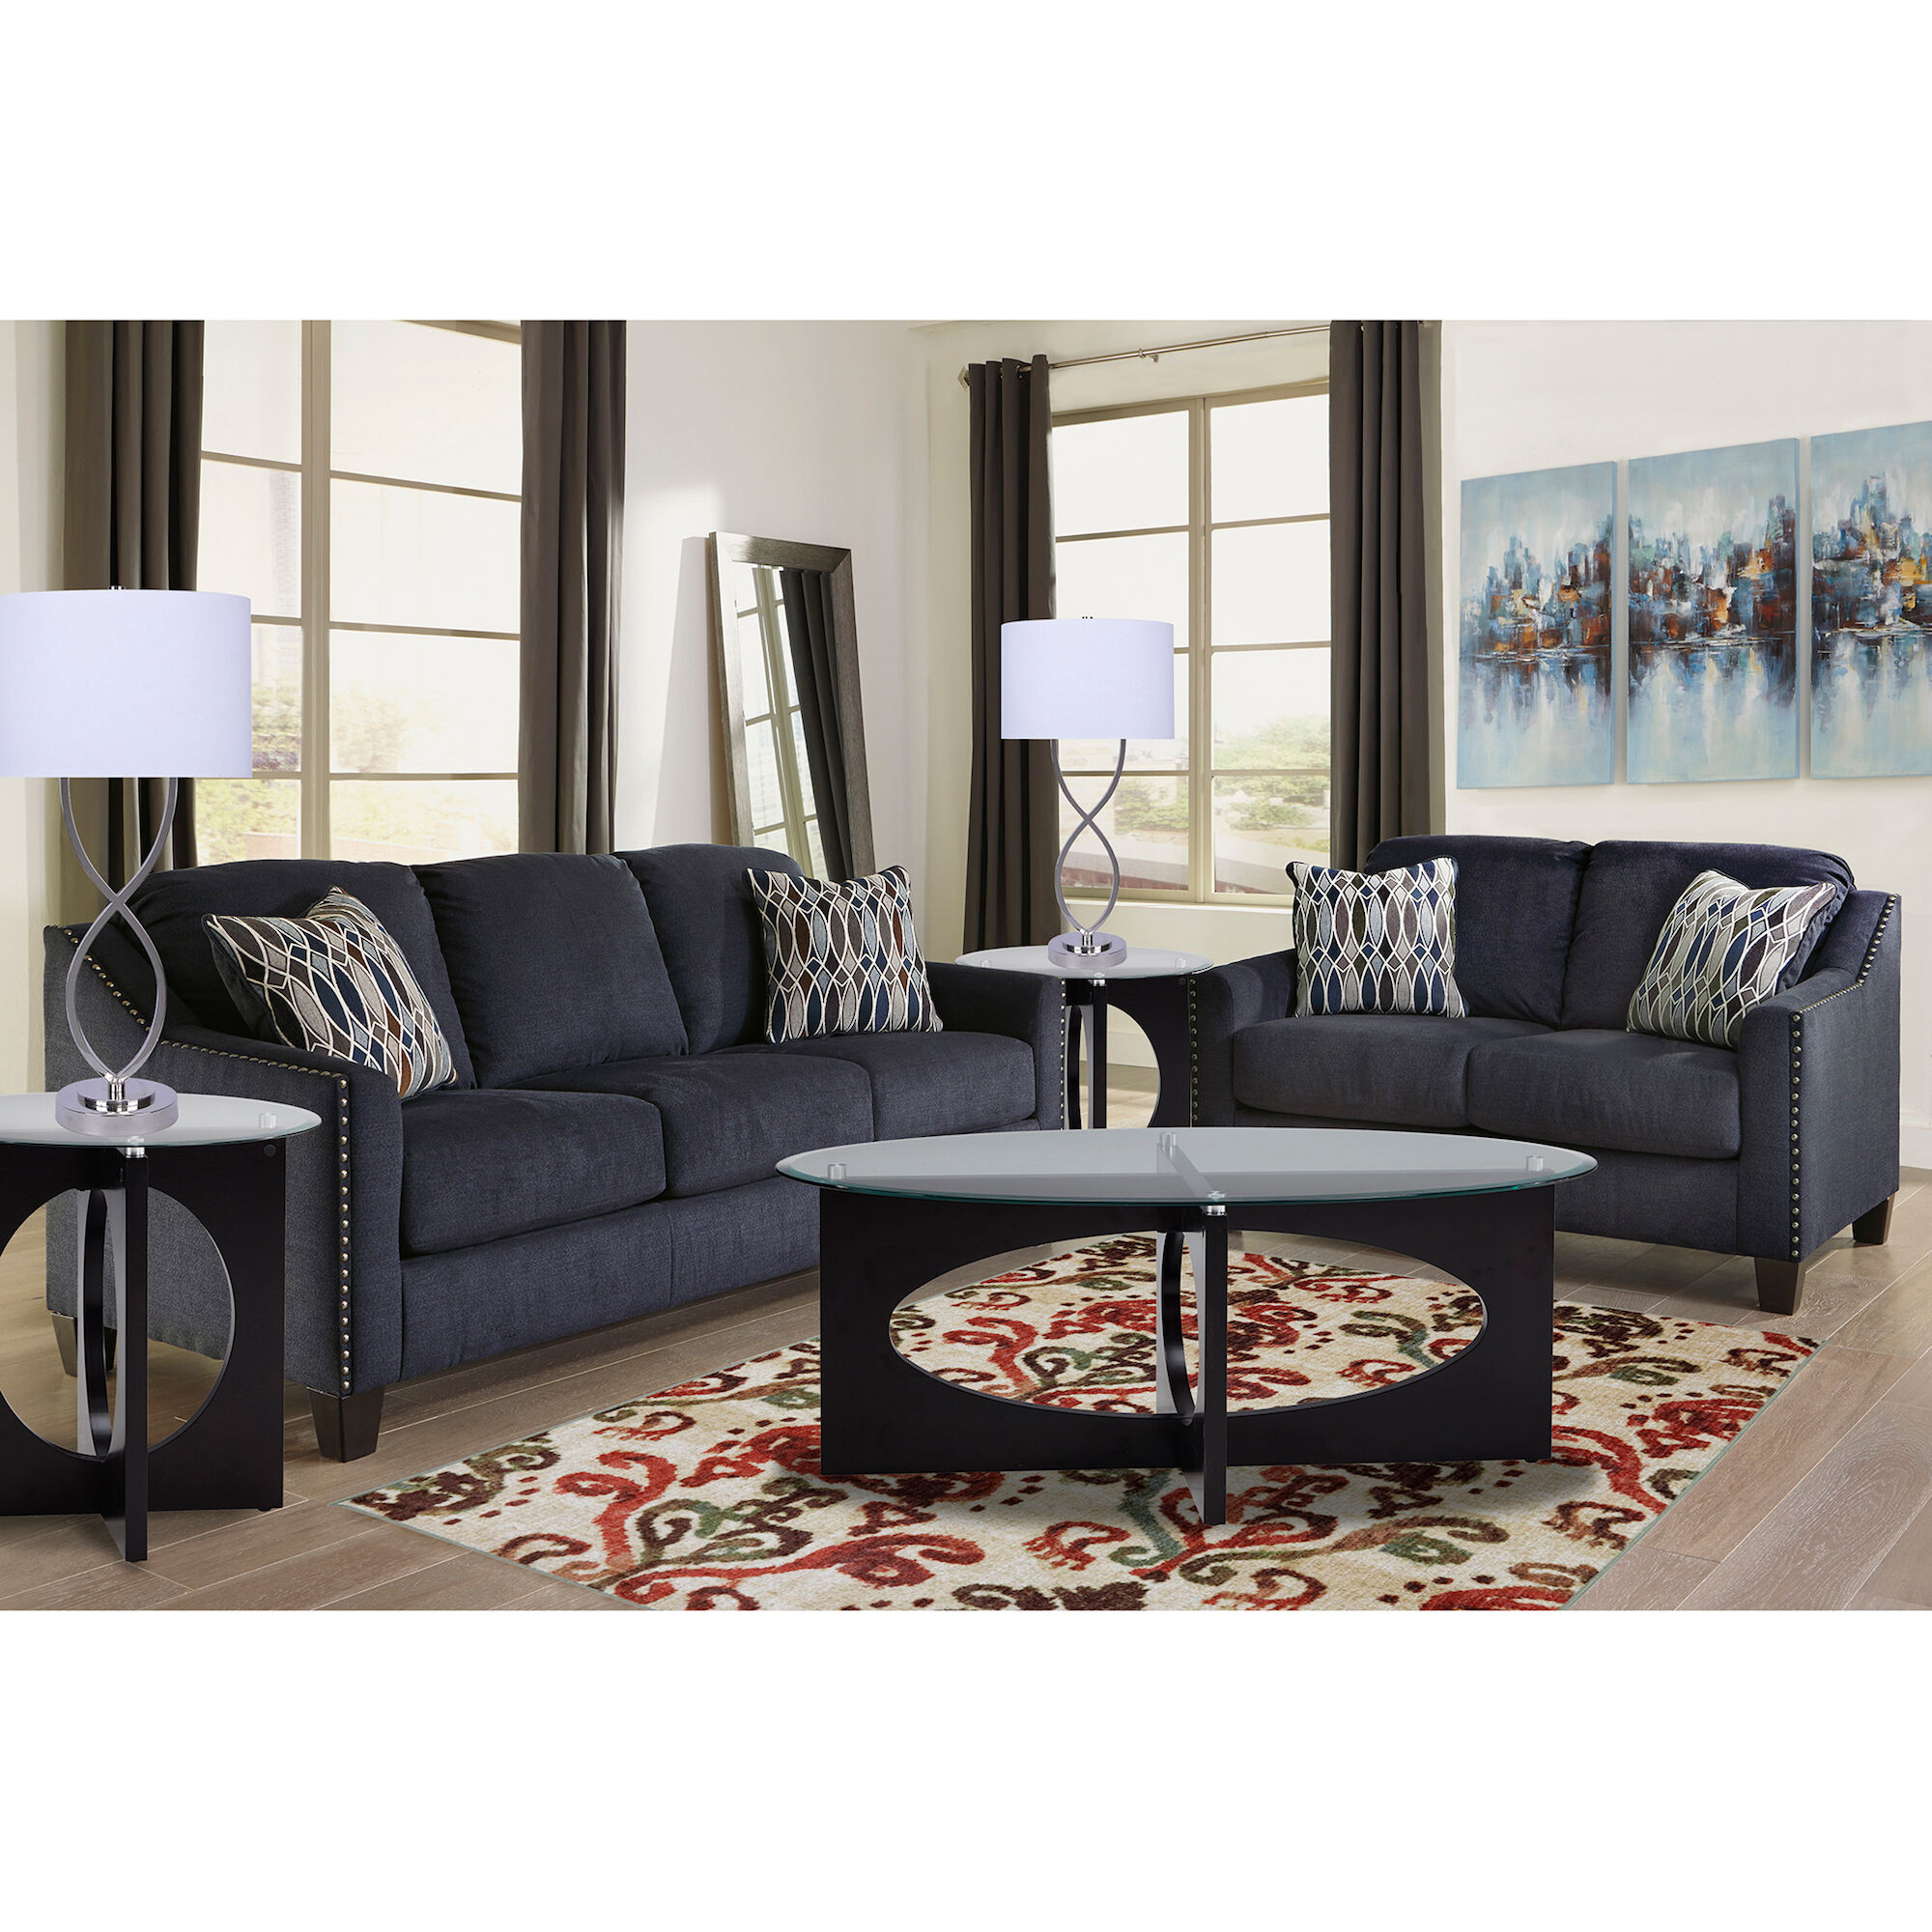 sofa bed living room sets end table rent to own loveseats sofas and couches aaron s 2 piece creeal heights collection